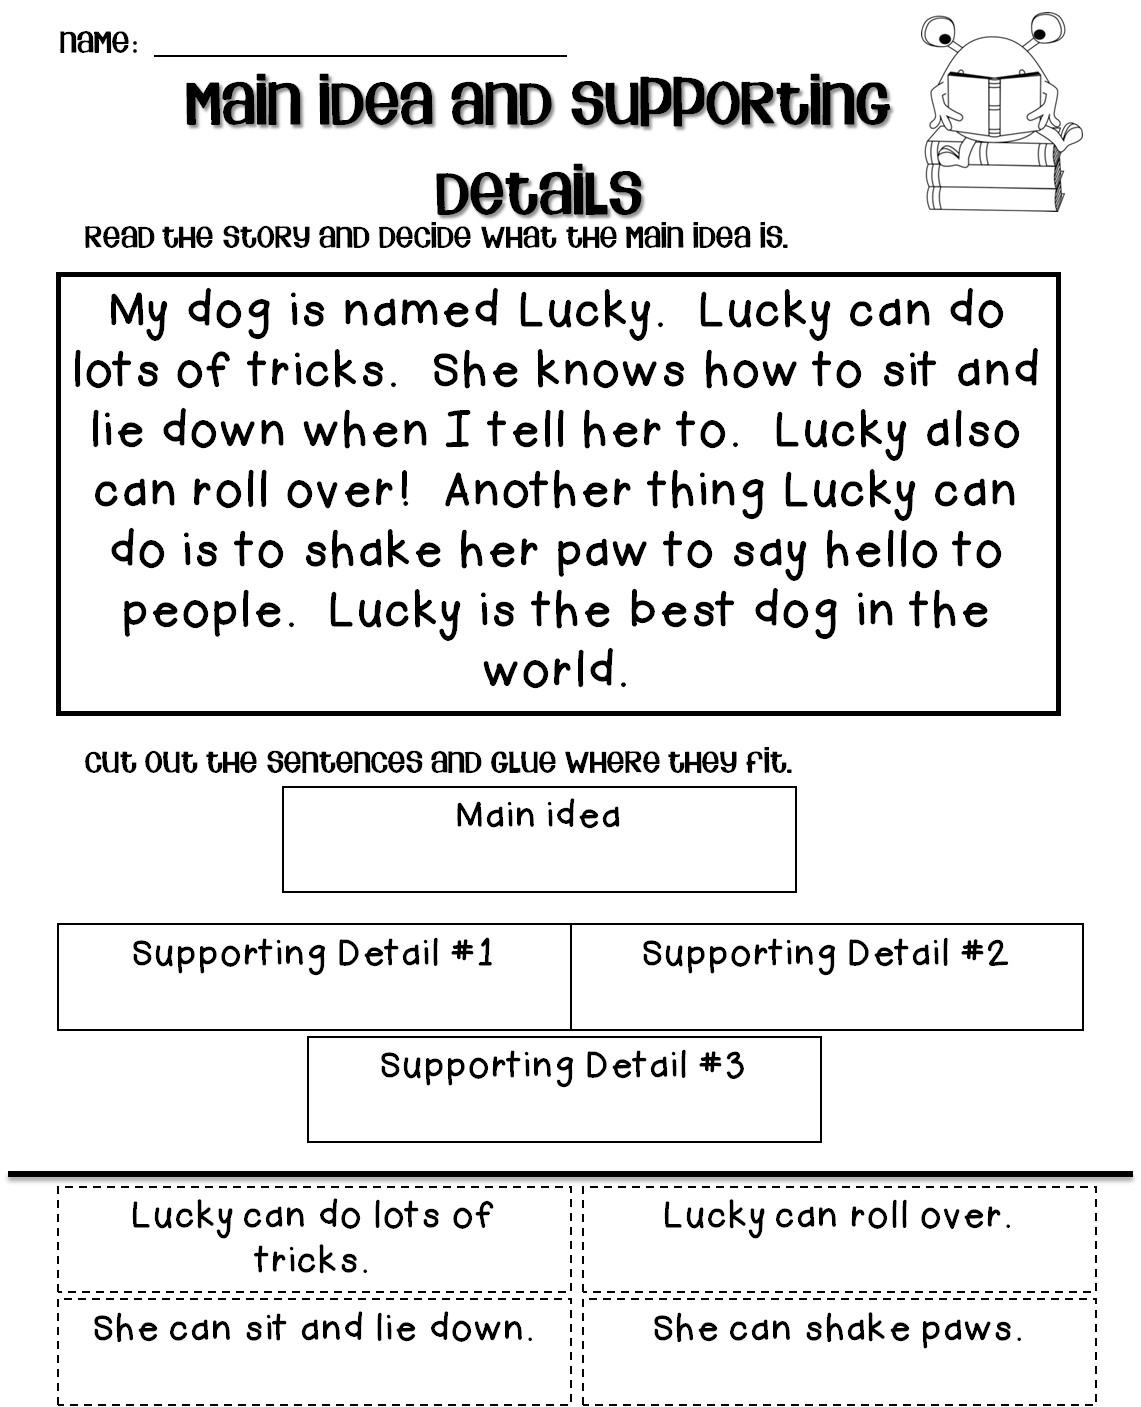 Free Printable Main Idea Worksheets Whats Number Grinch Printable Worksheets Main Idea